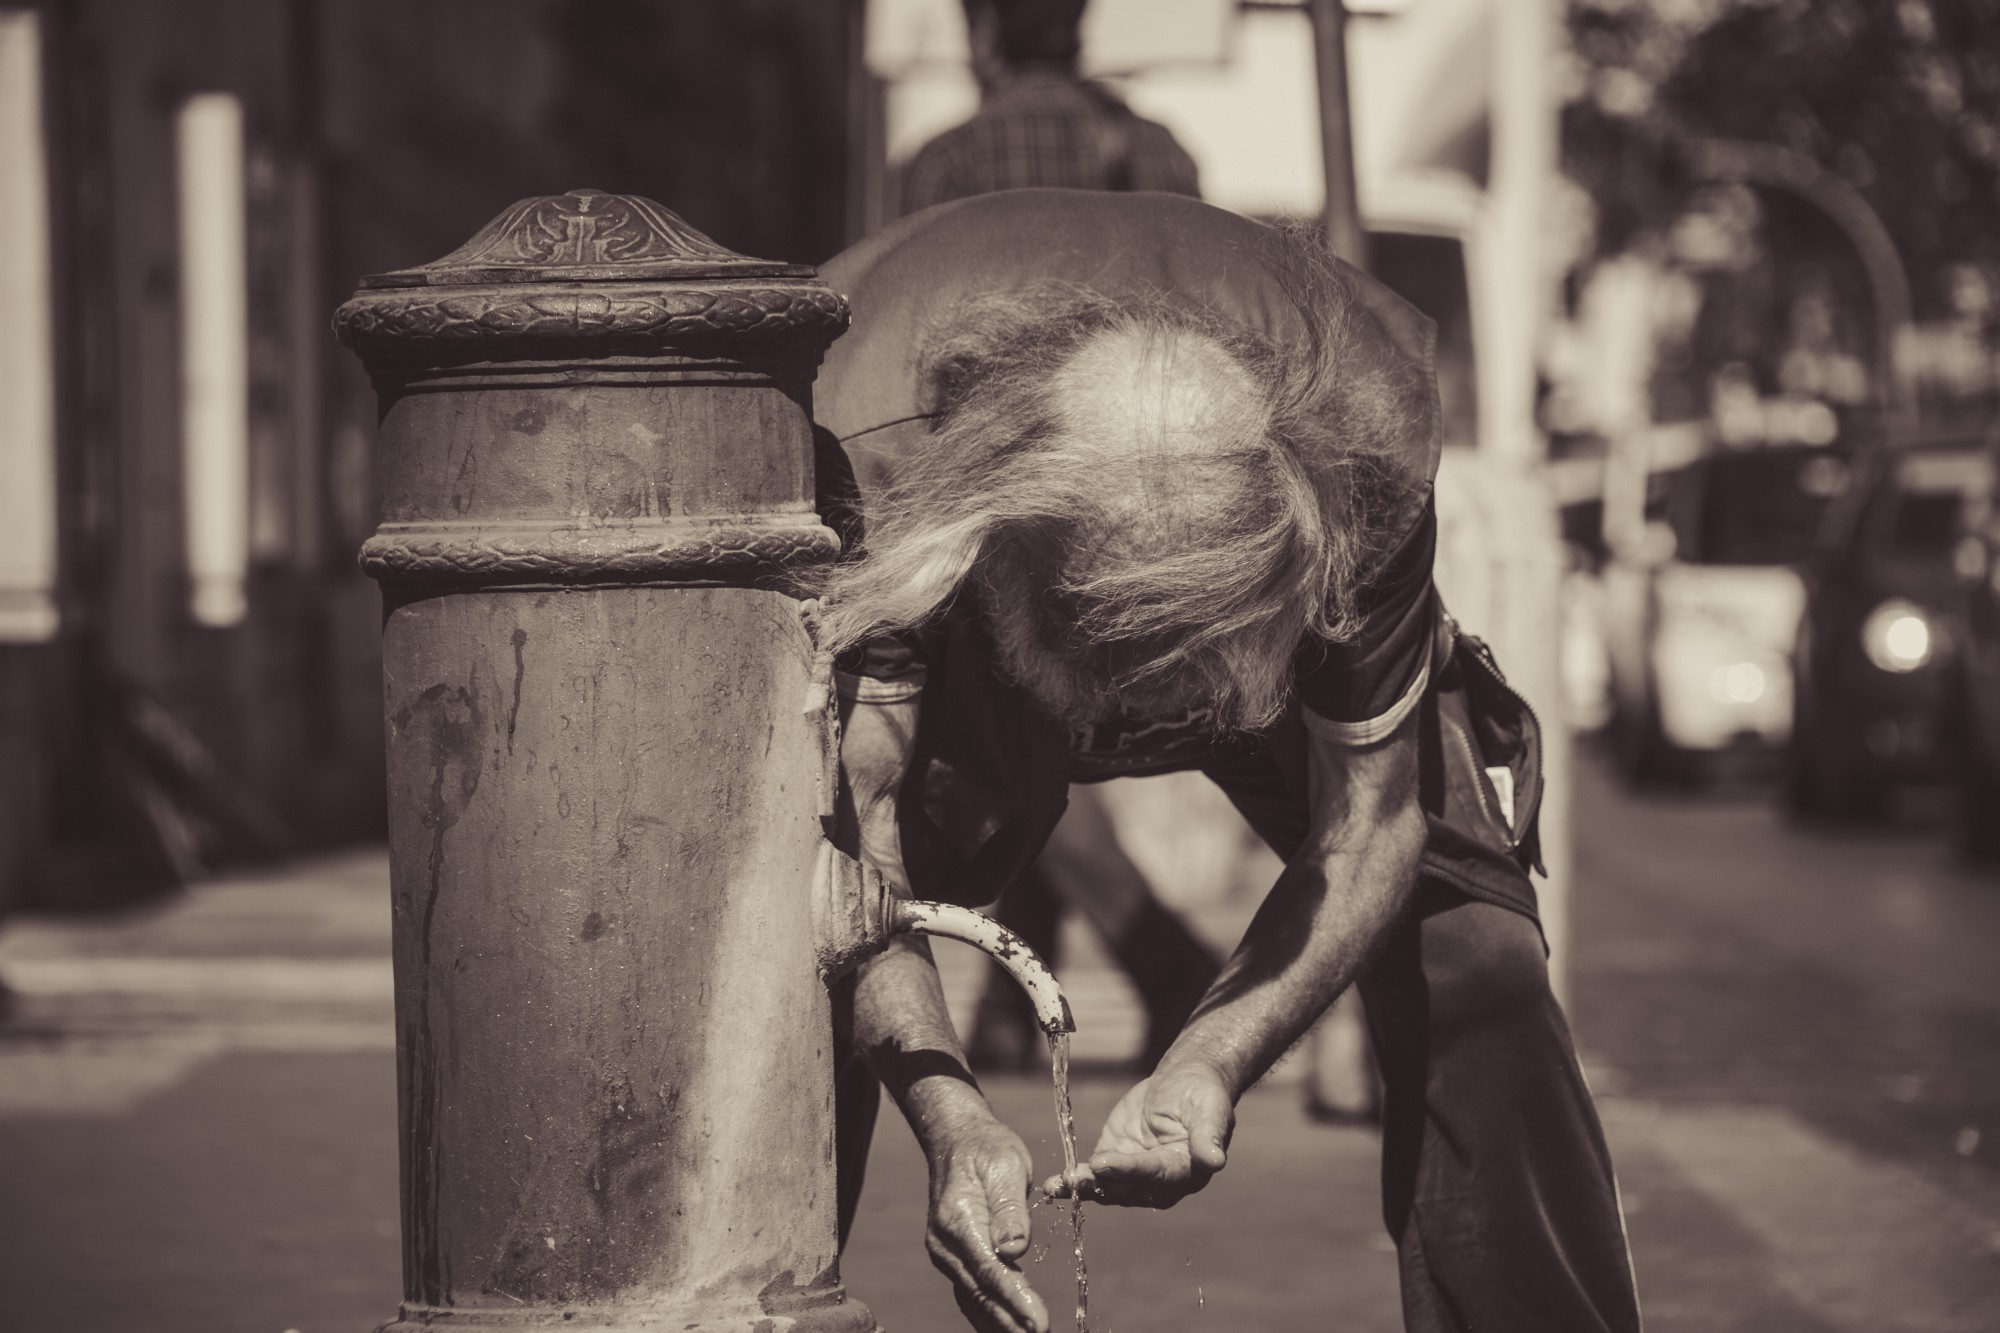 Elderly man with long hair but balding, washing his hands from a fire hydrant that is trickling a small stream of water.